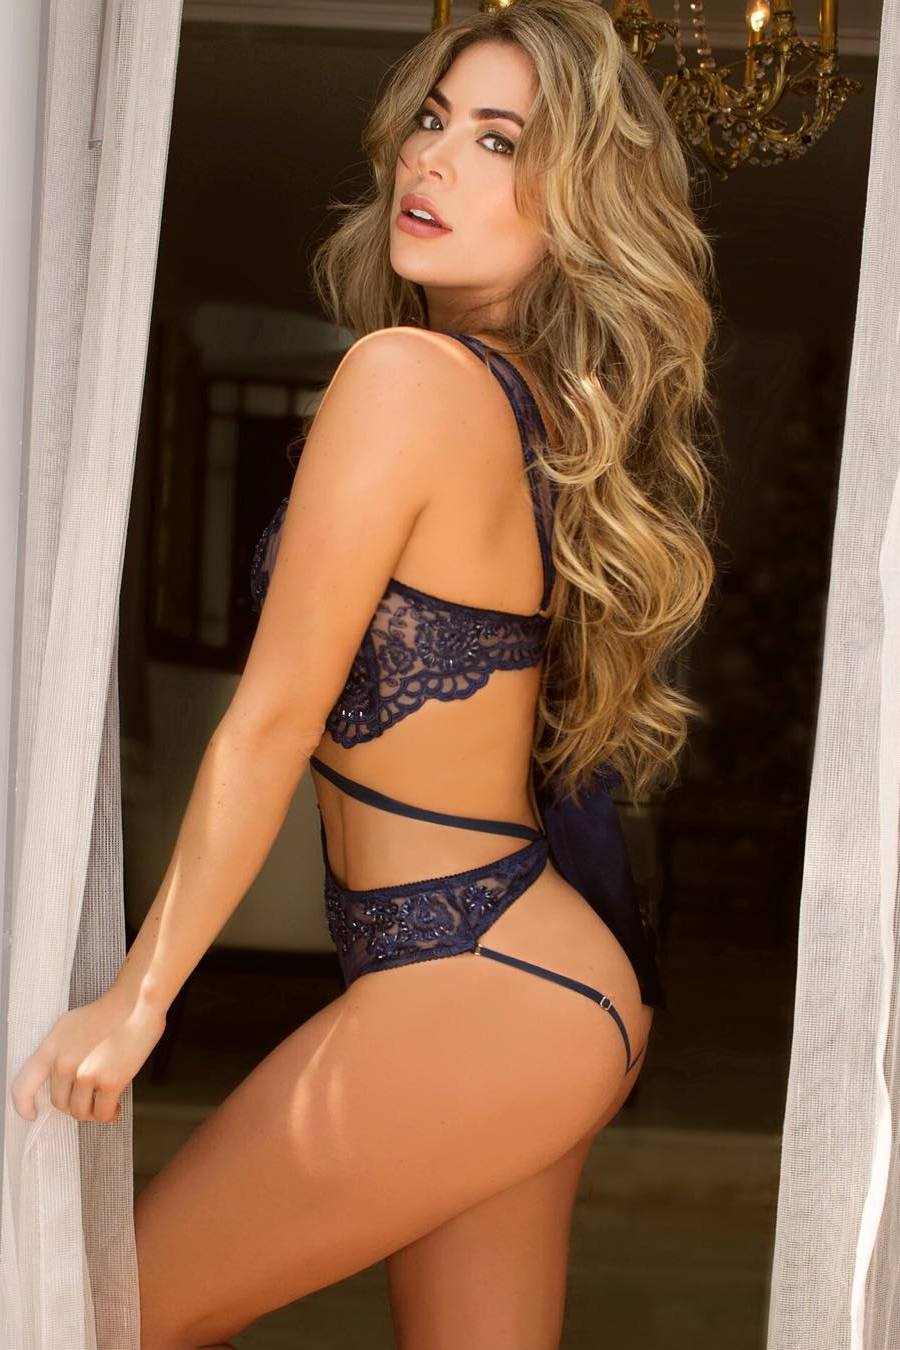 daniela tamayo lingerie sexy girl model attractive body curtains